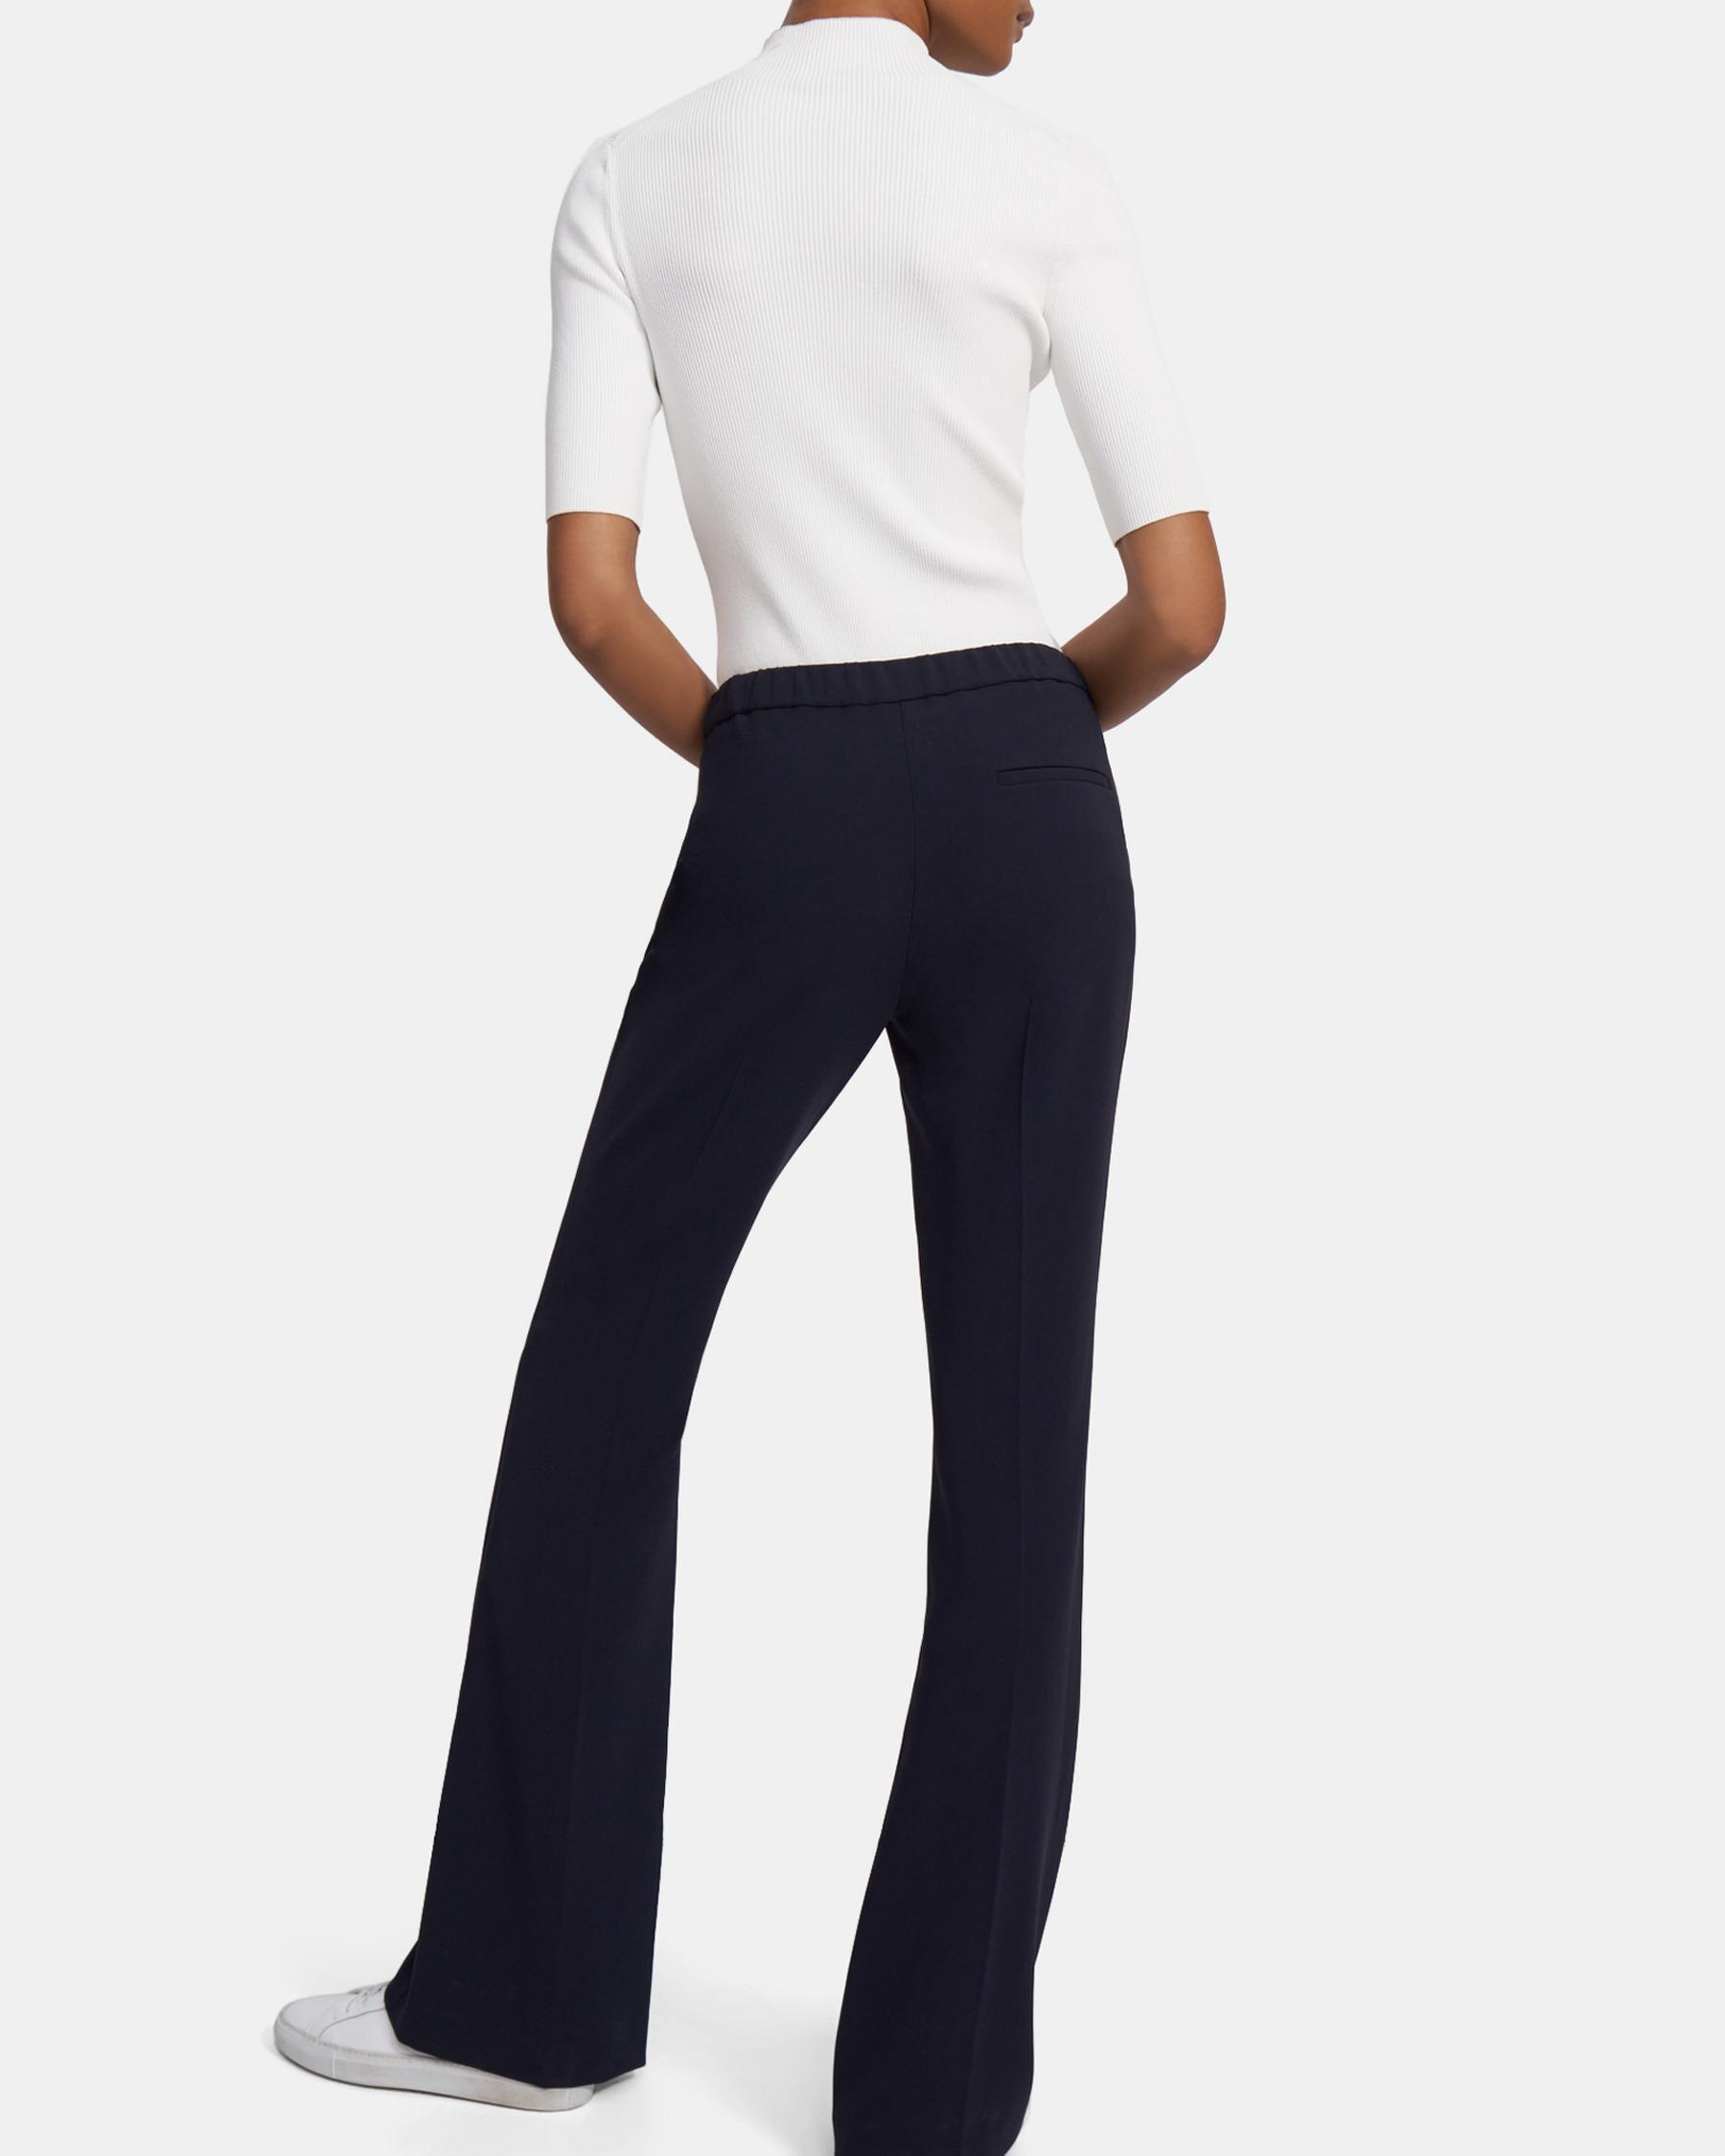 Demitria Pull-On Pant in Crepe 6